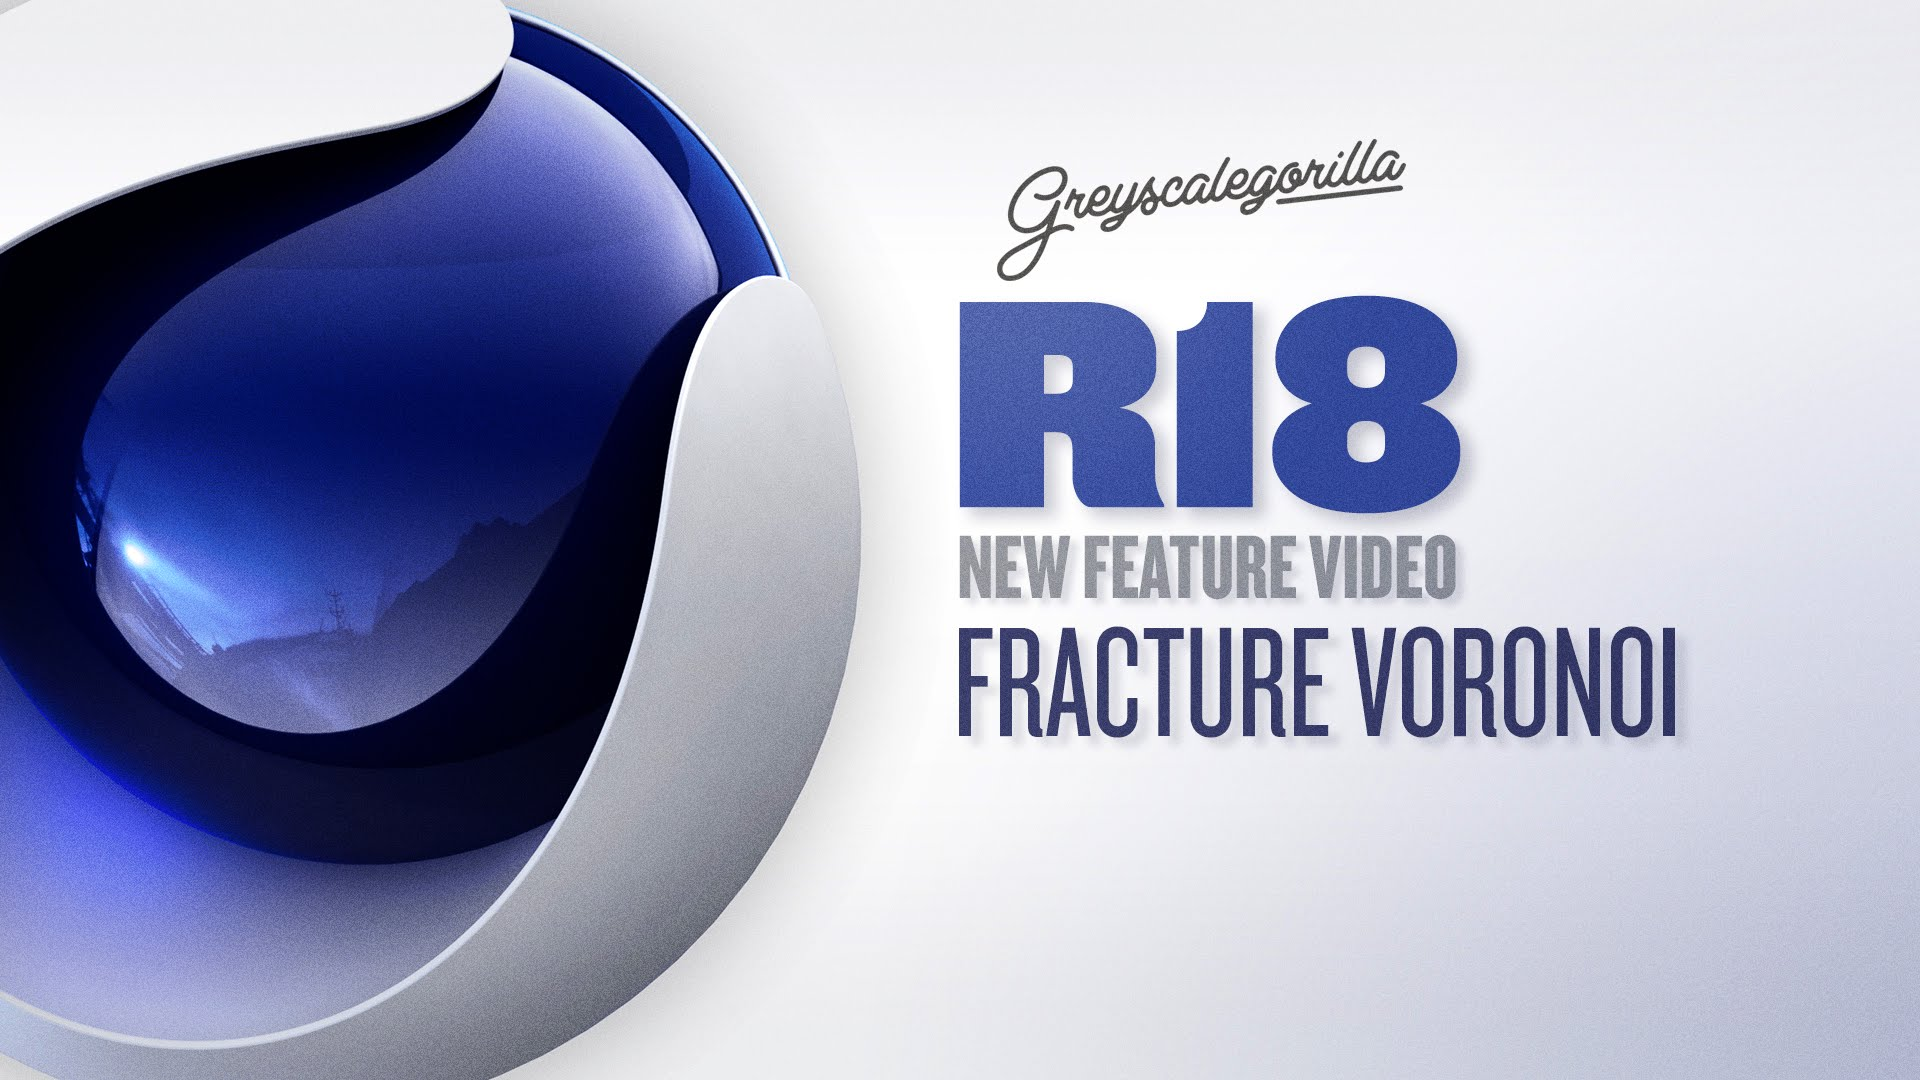 Cinema 4D R18 Voronoi Fracture - Break Objects In Cinema 4D